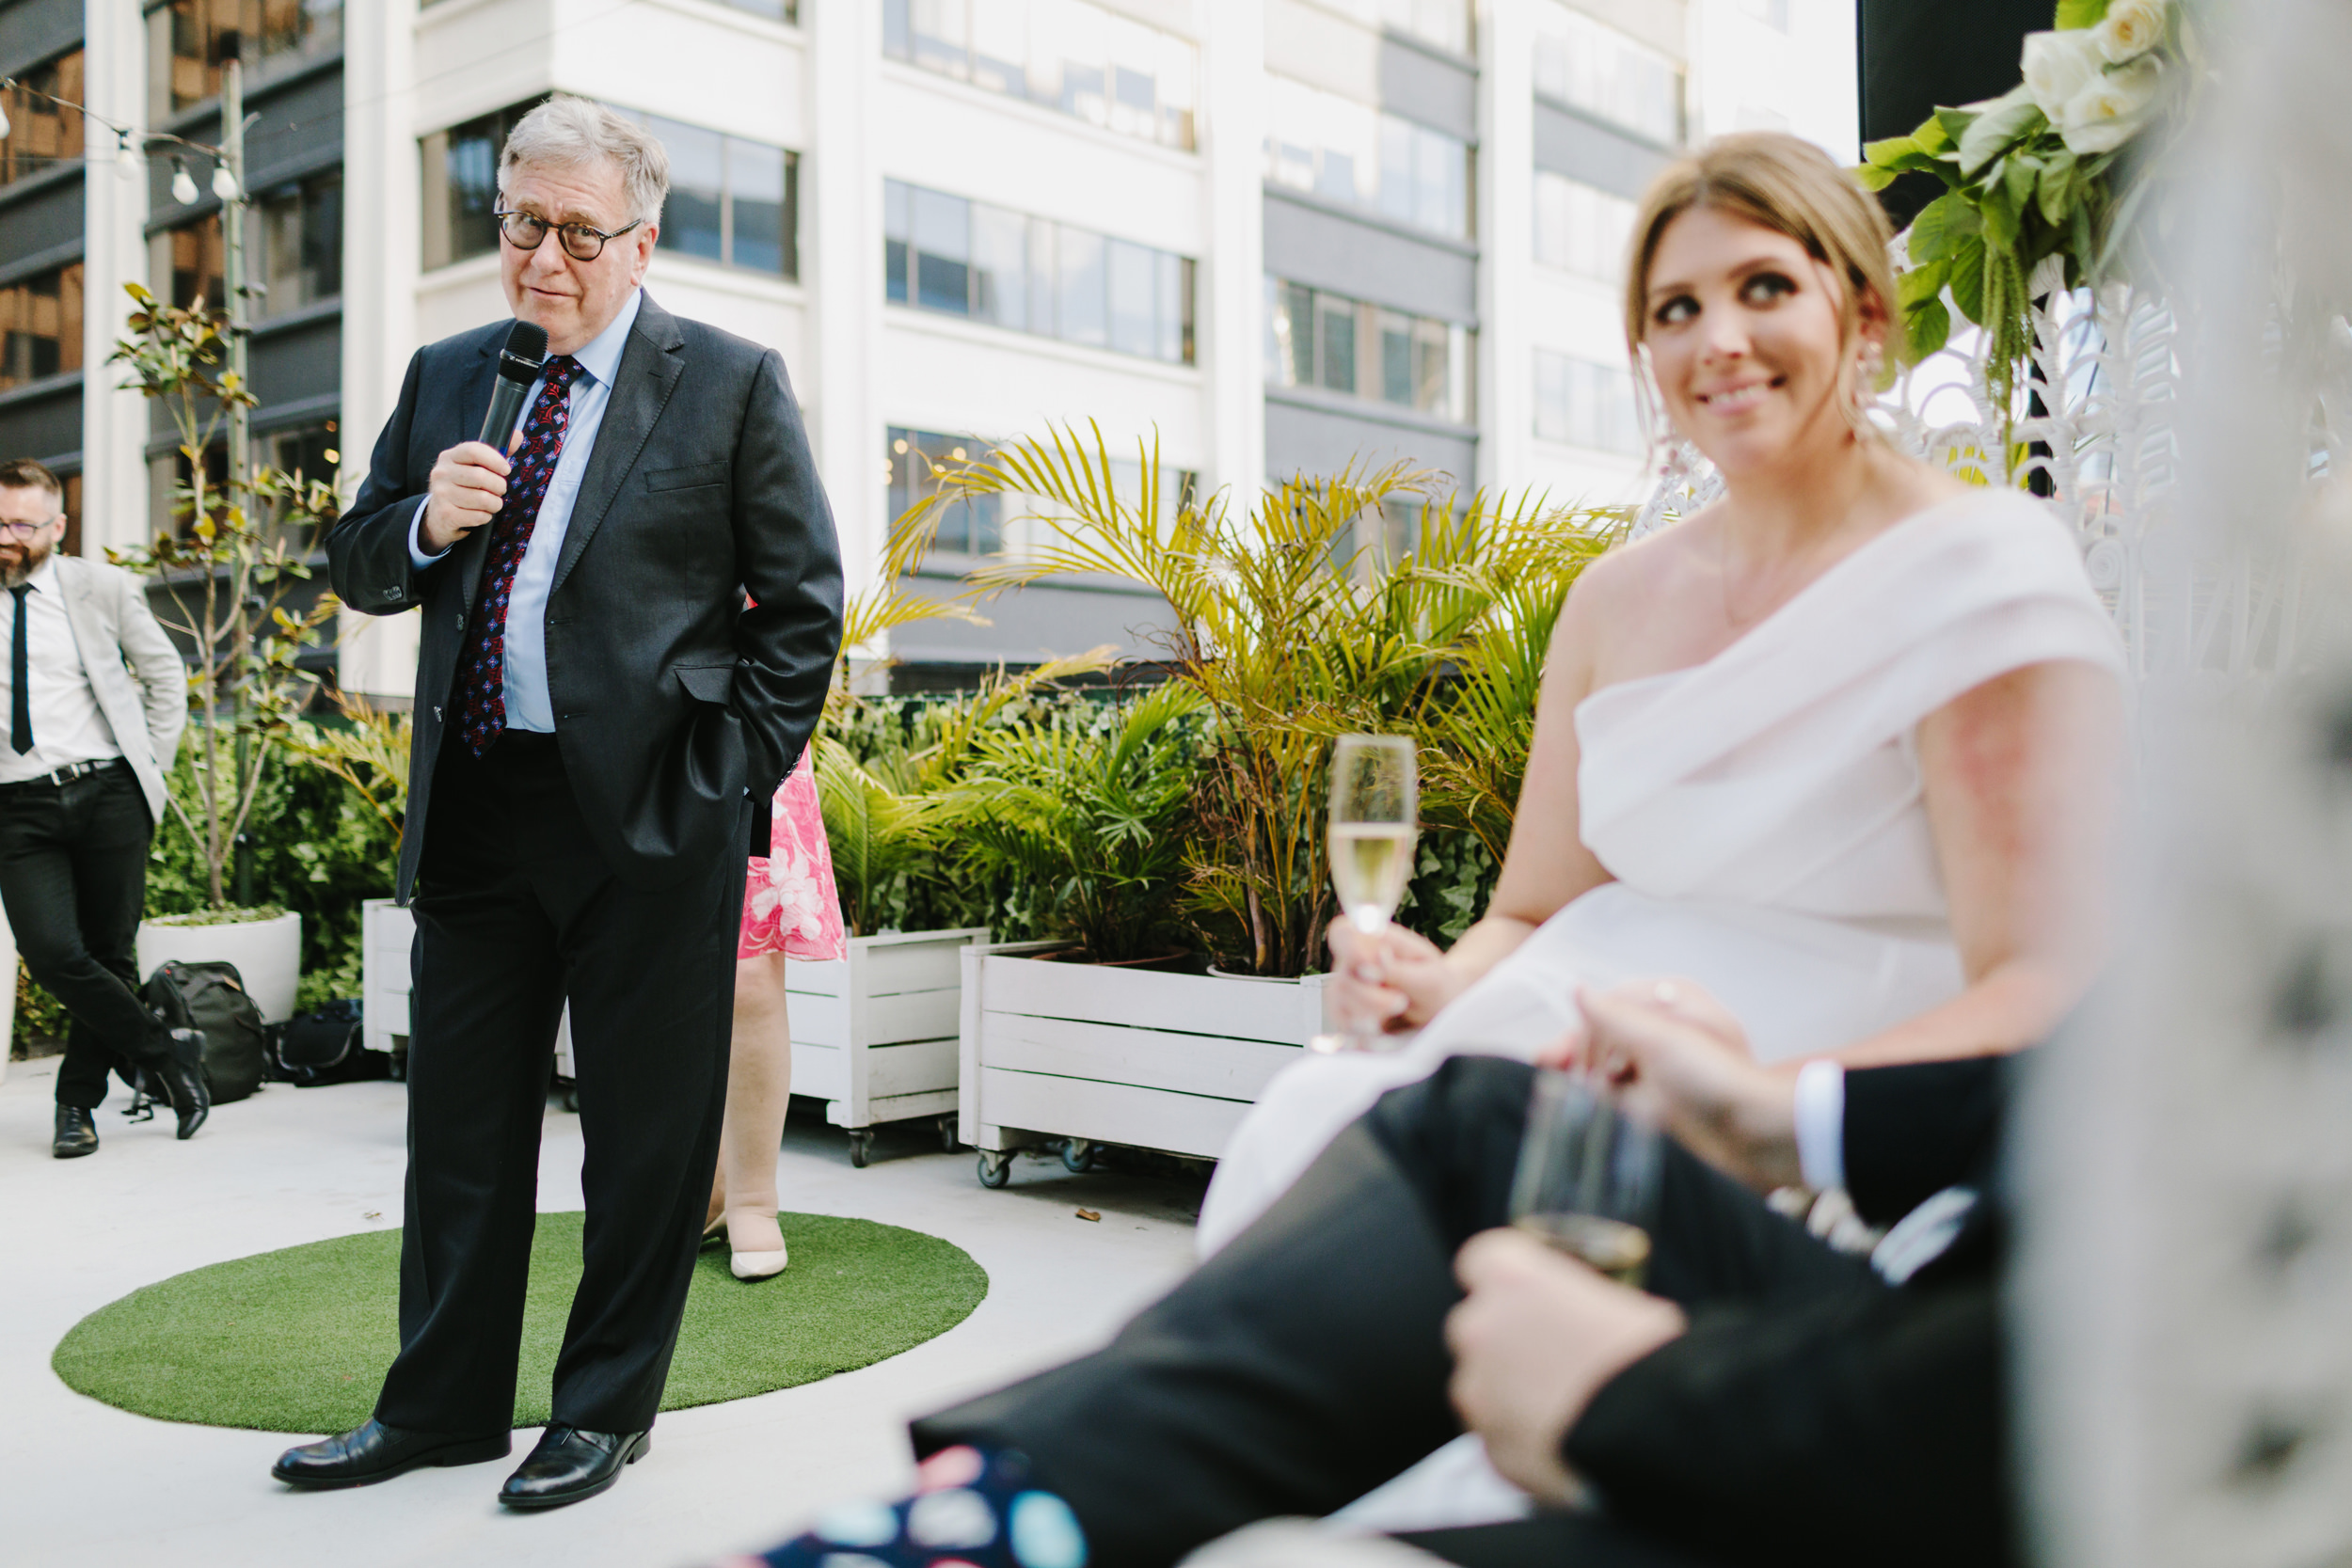 Melbourne_City_Rooftop_Wedding_Tyson_Brigette105.JPG